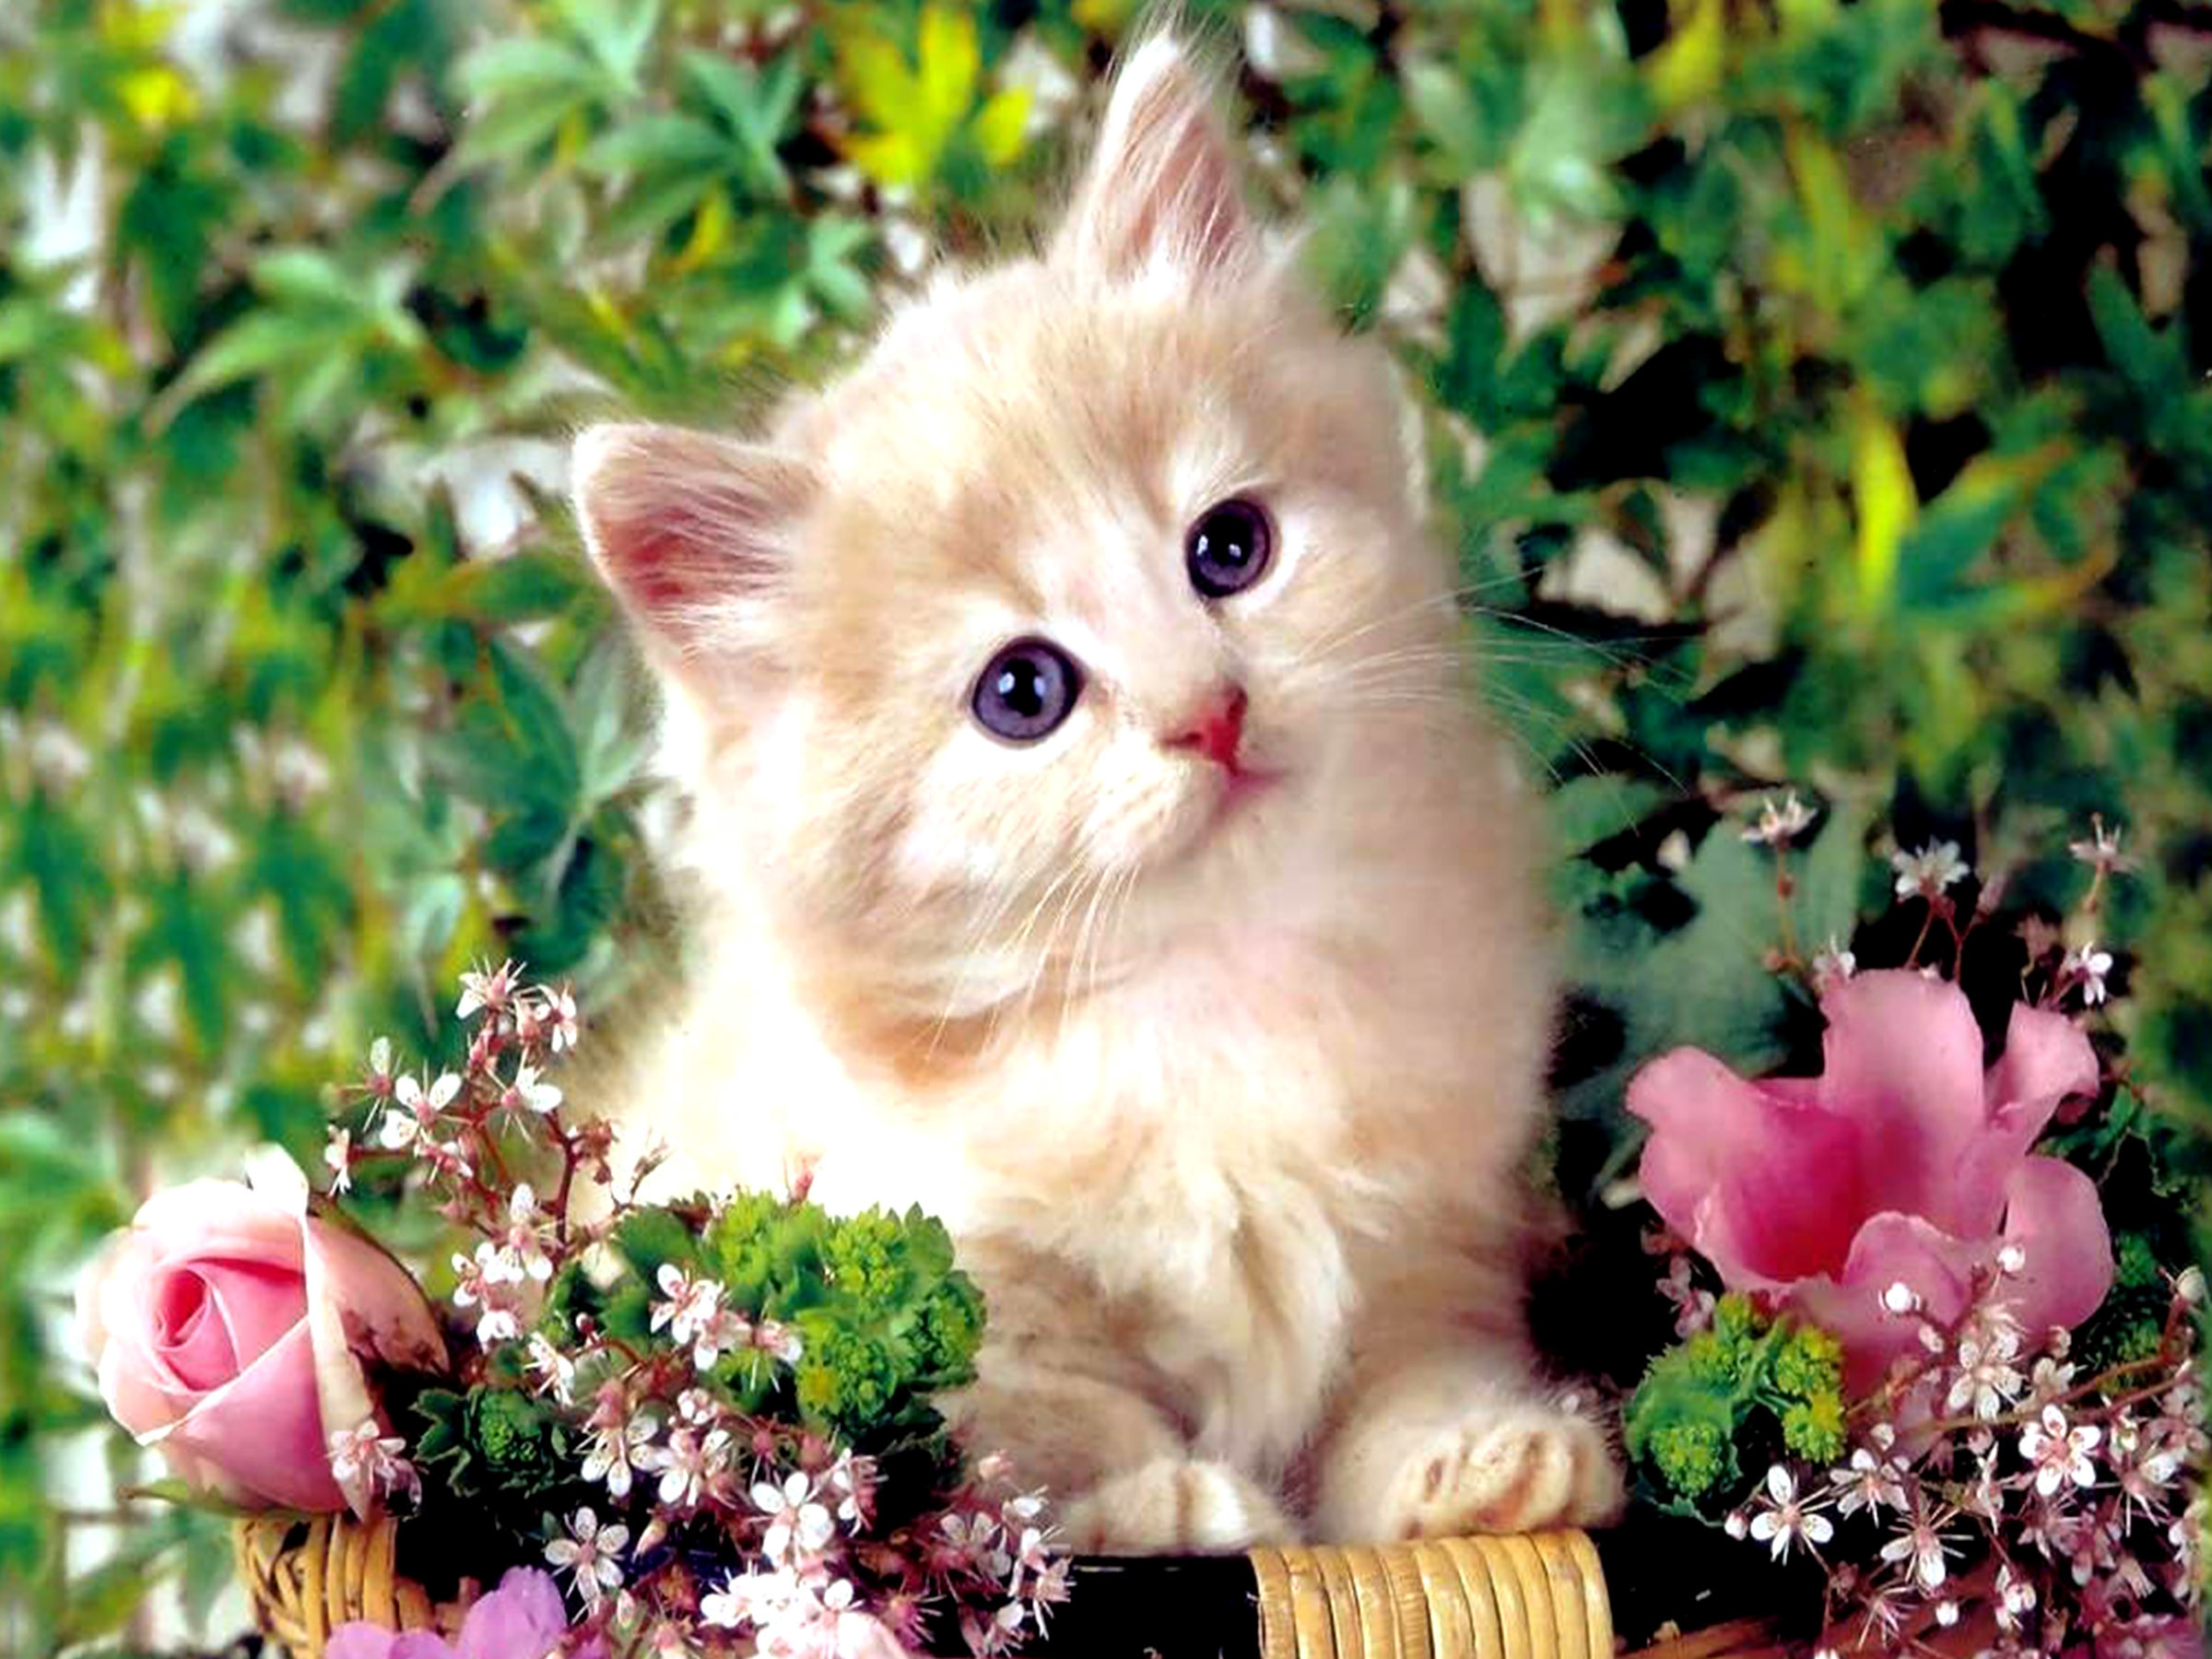 HD Wallpaper and background photos of baby kittens for fans of Baby Animals  images.